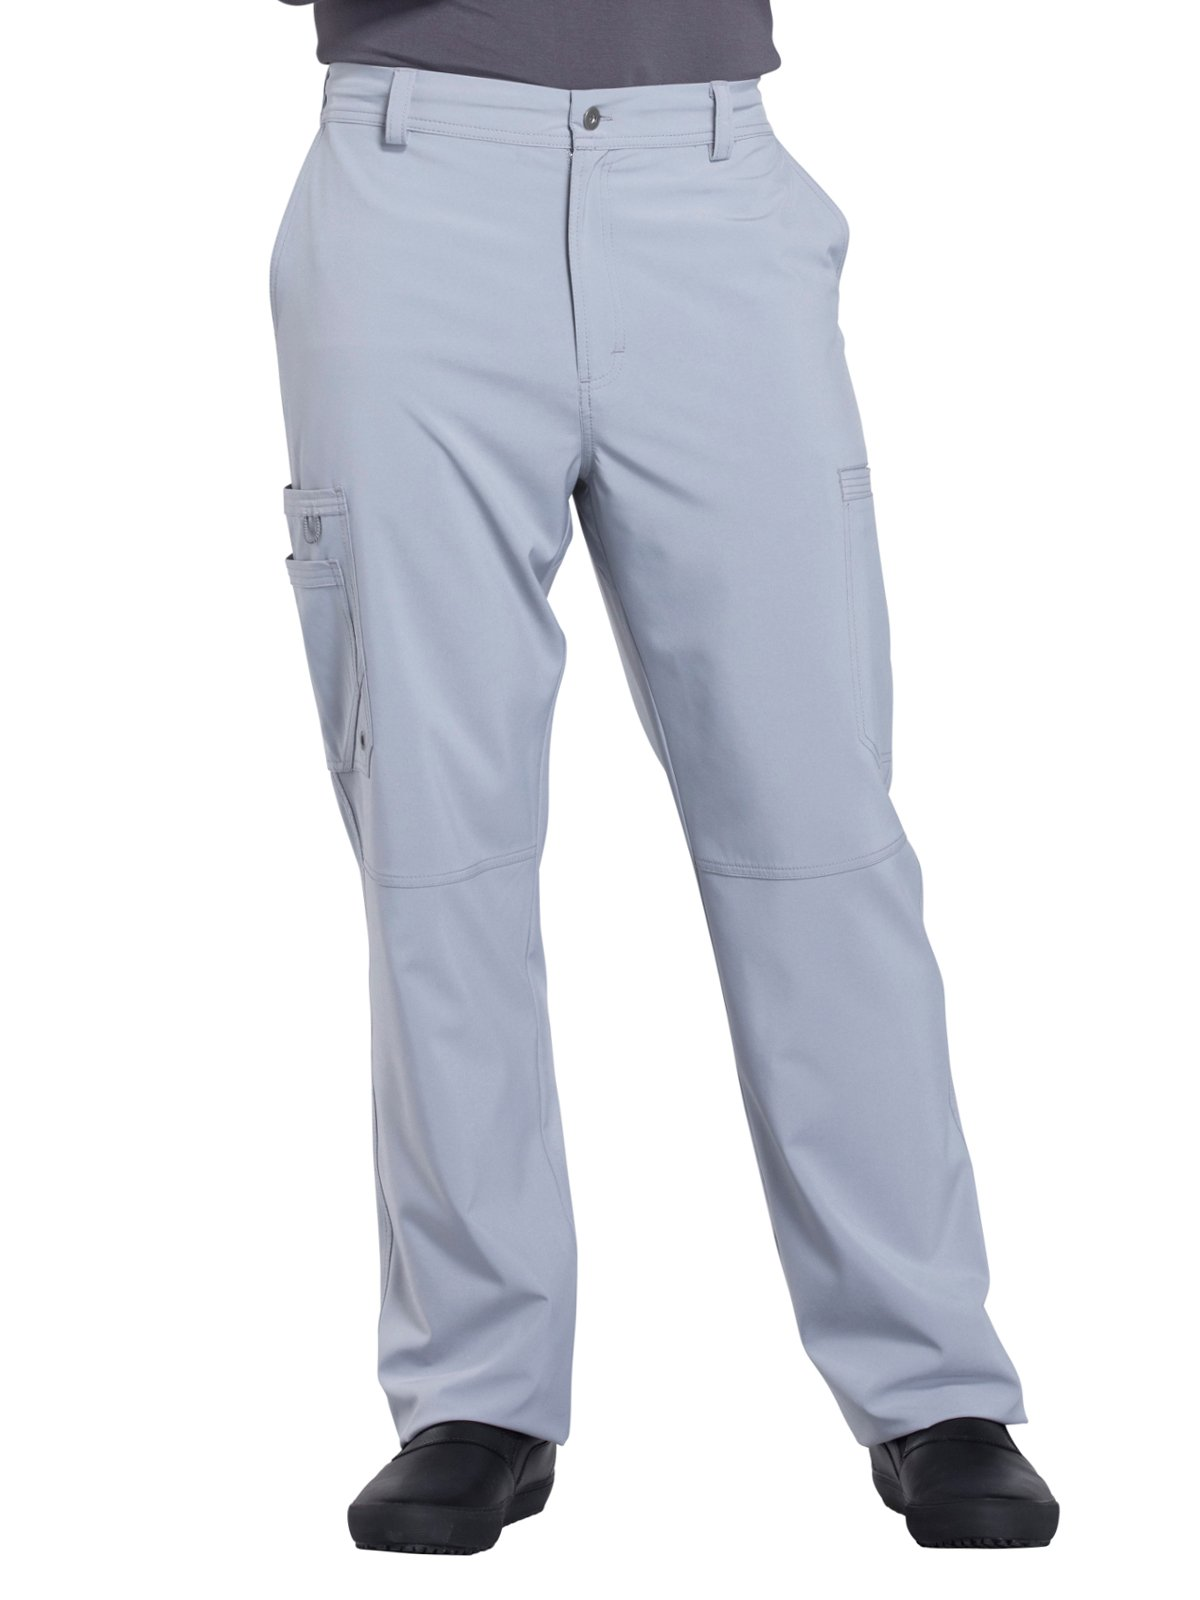 Cherokee Infinity CK200A Men's Fly Front Cargo Pant Grey L Short by Cherokee